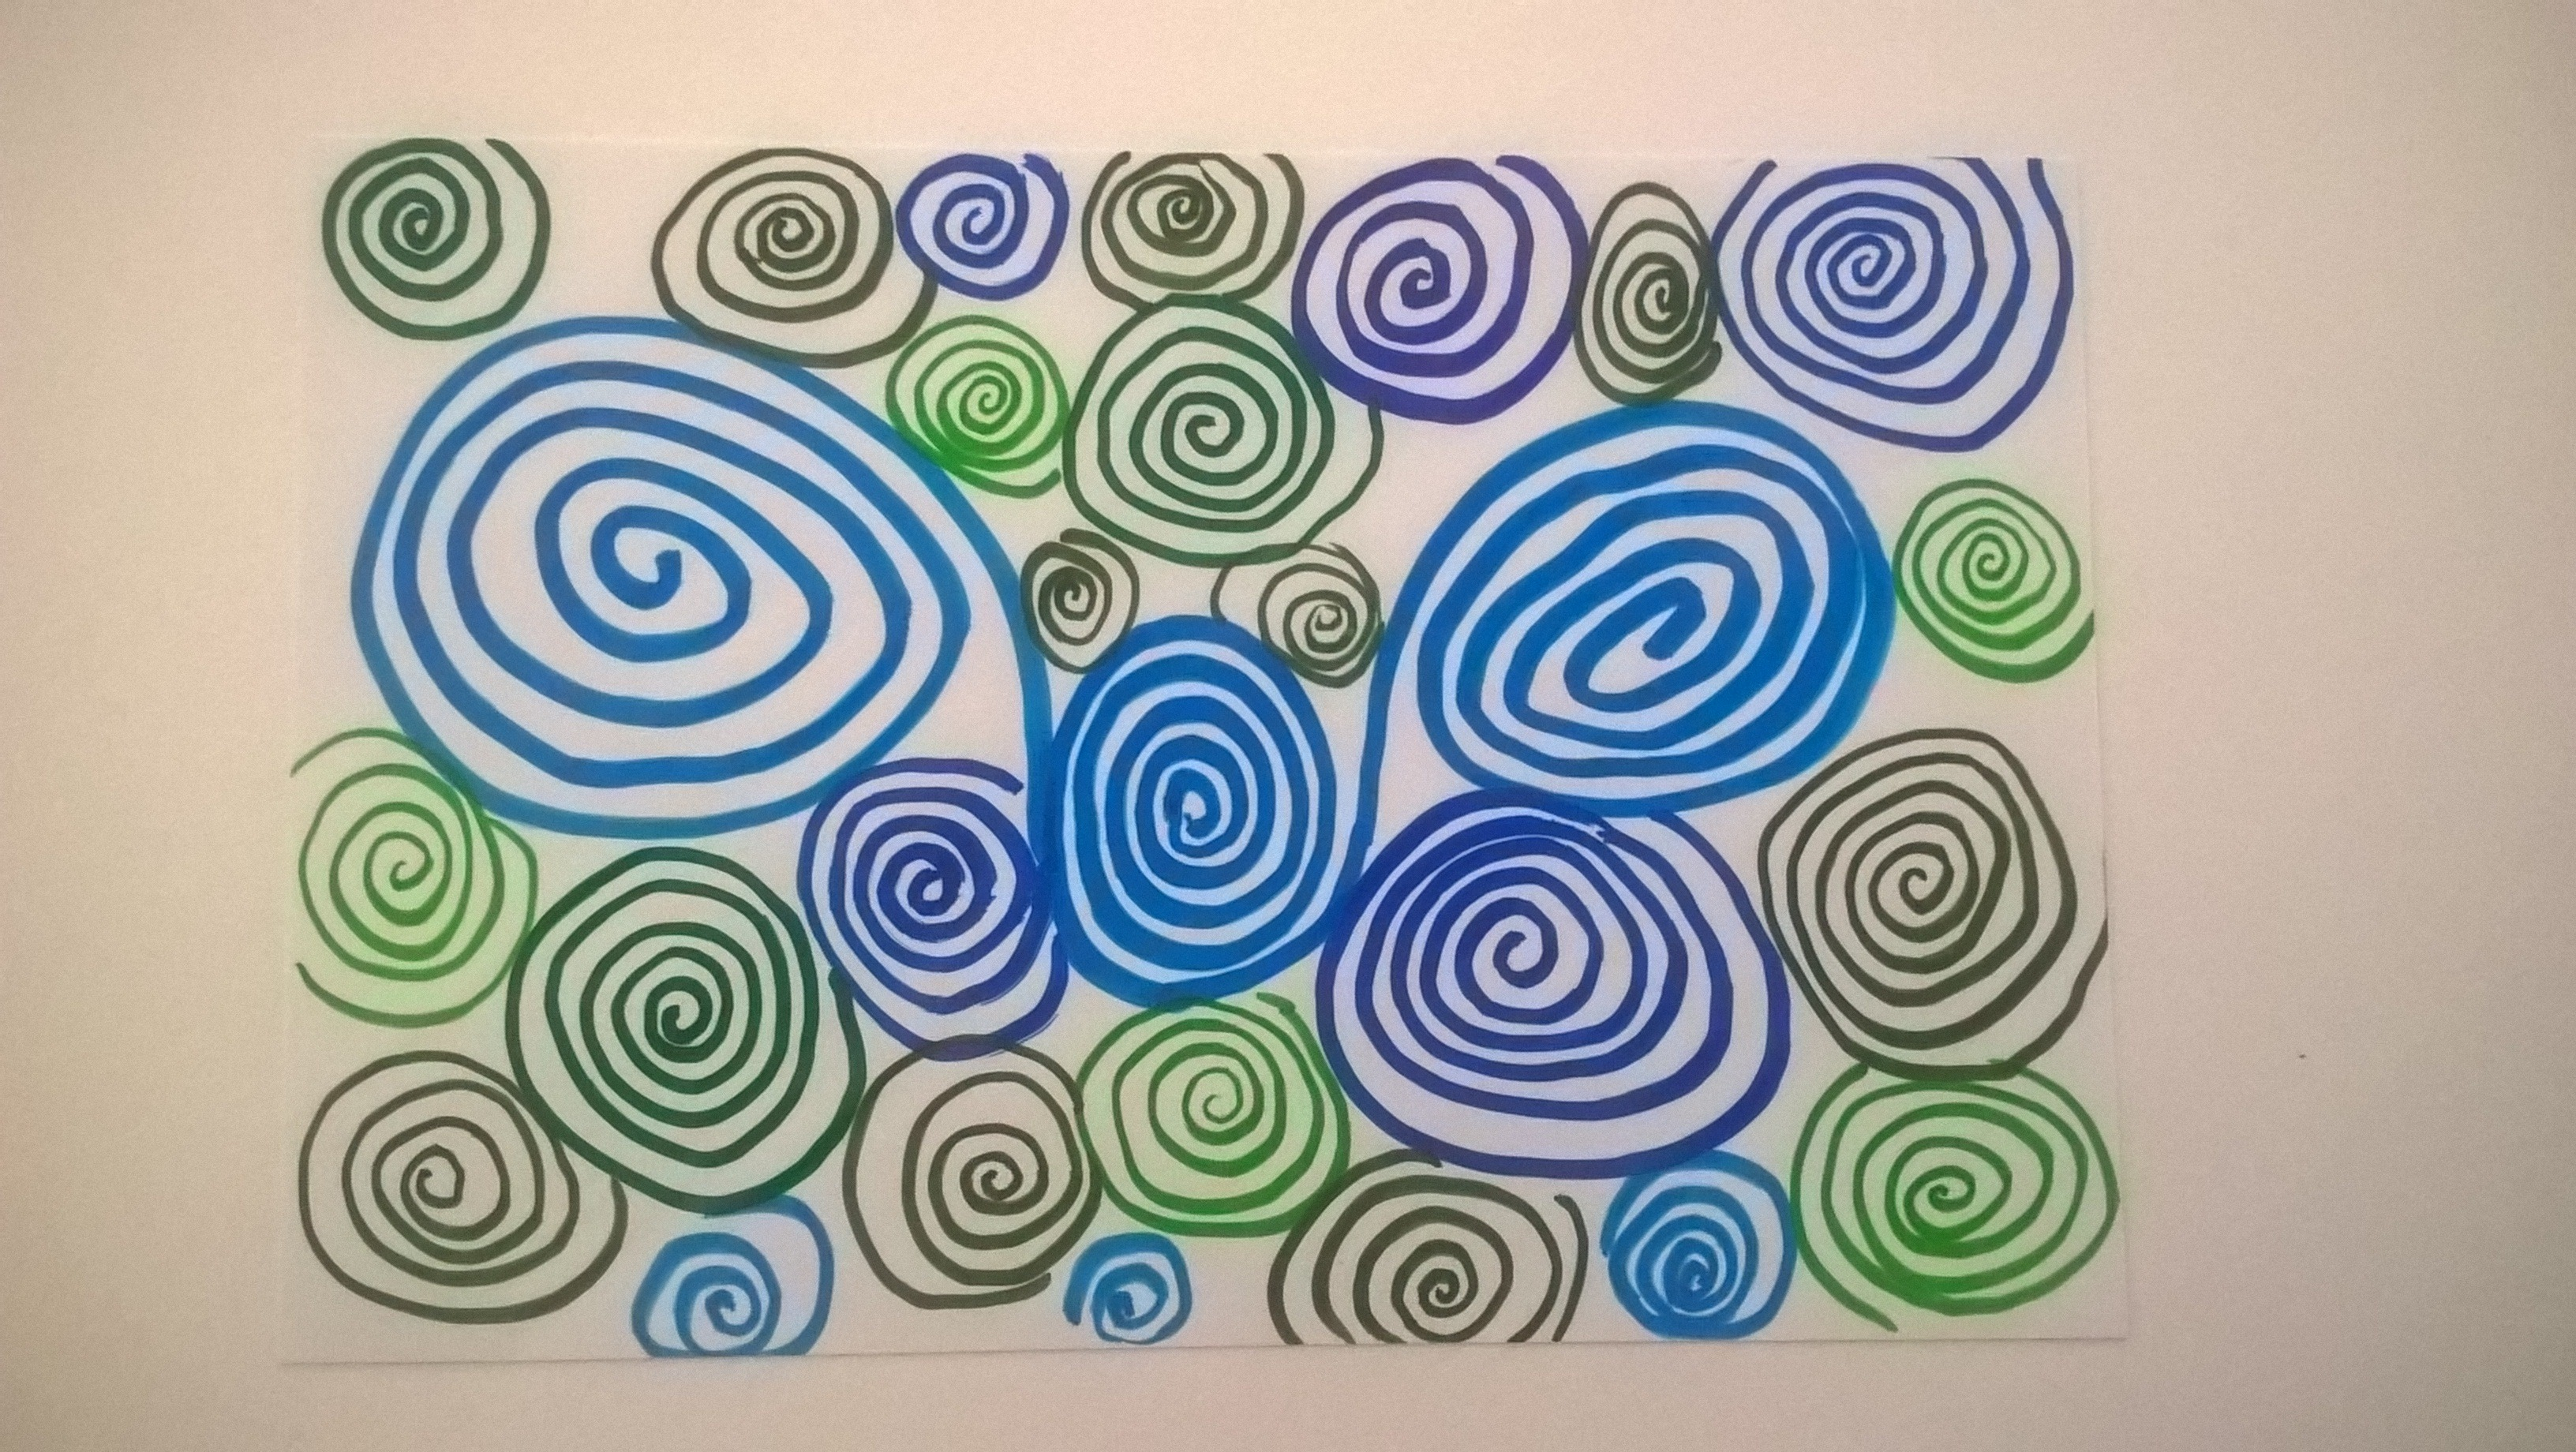 doodled spirals on photo paper